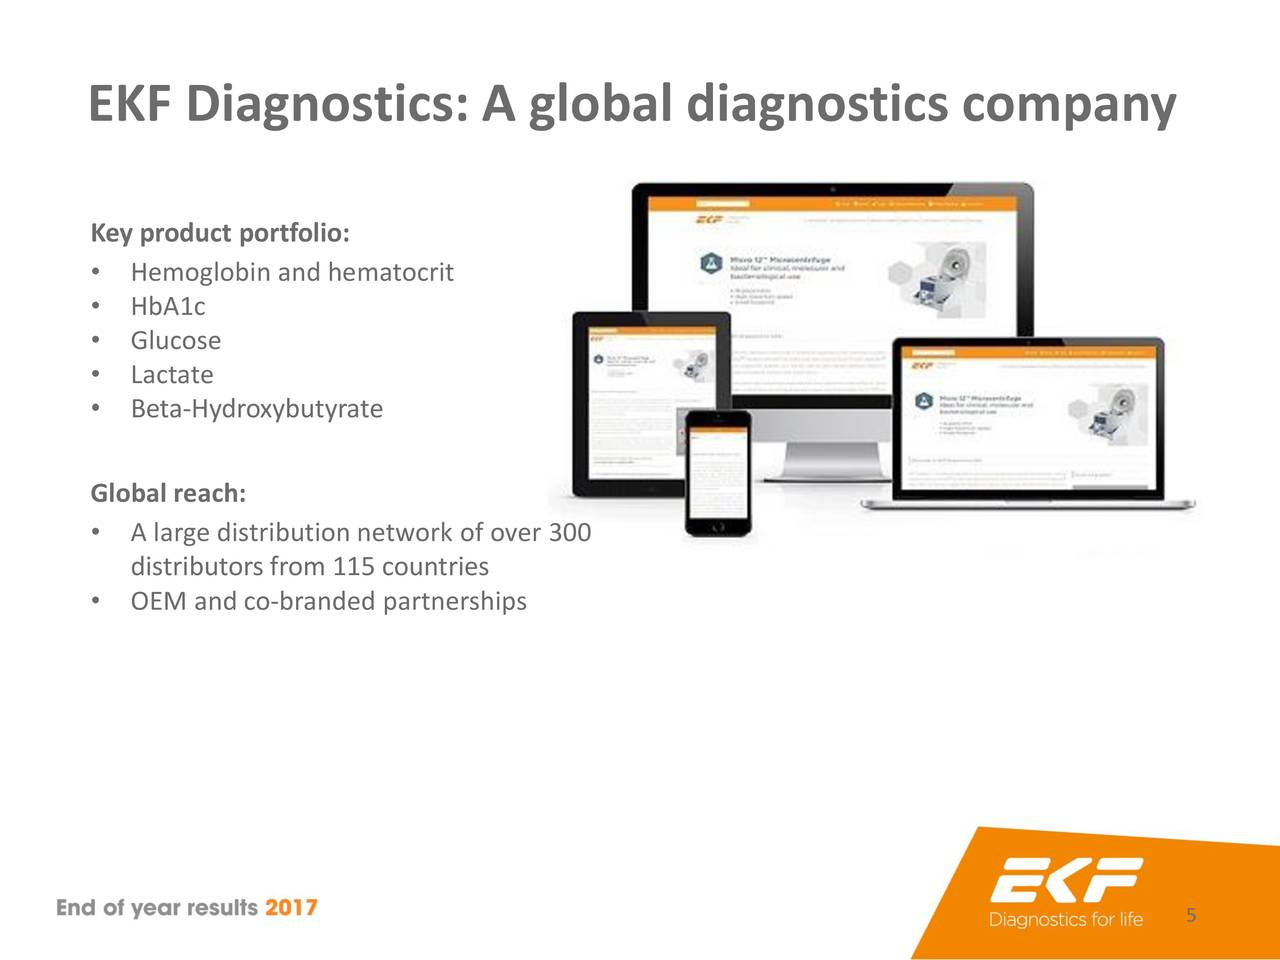 EKF Diagnostics Holdings PLC 2017 Q4 - Results - Earnings Call